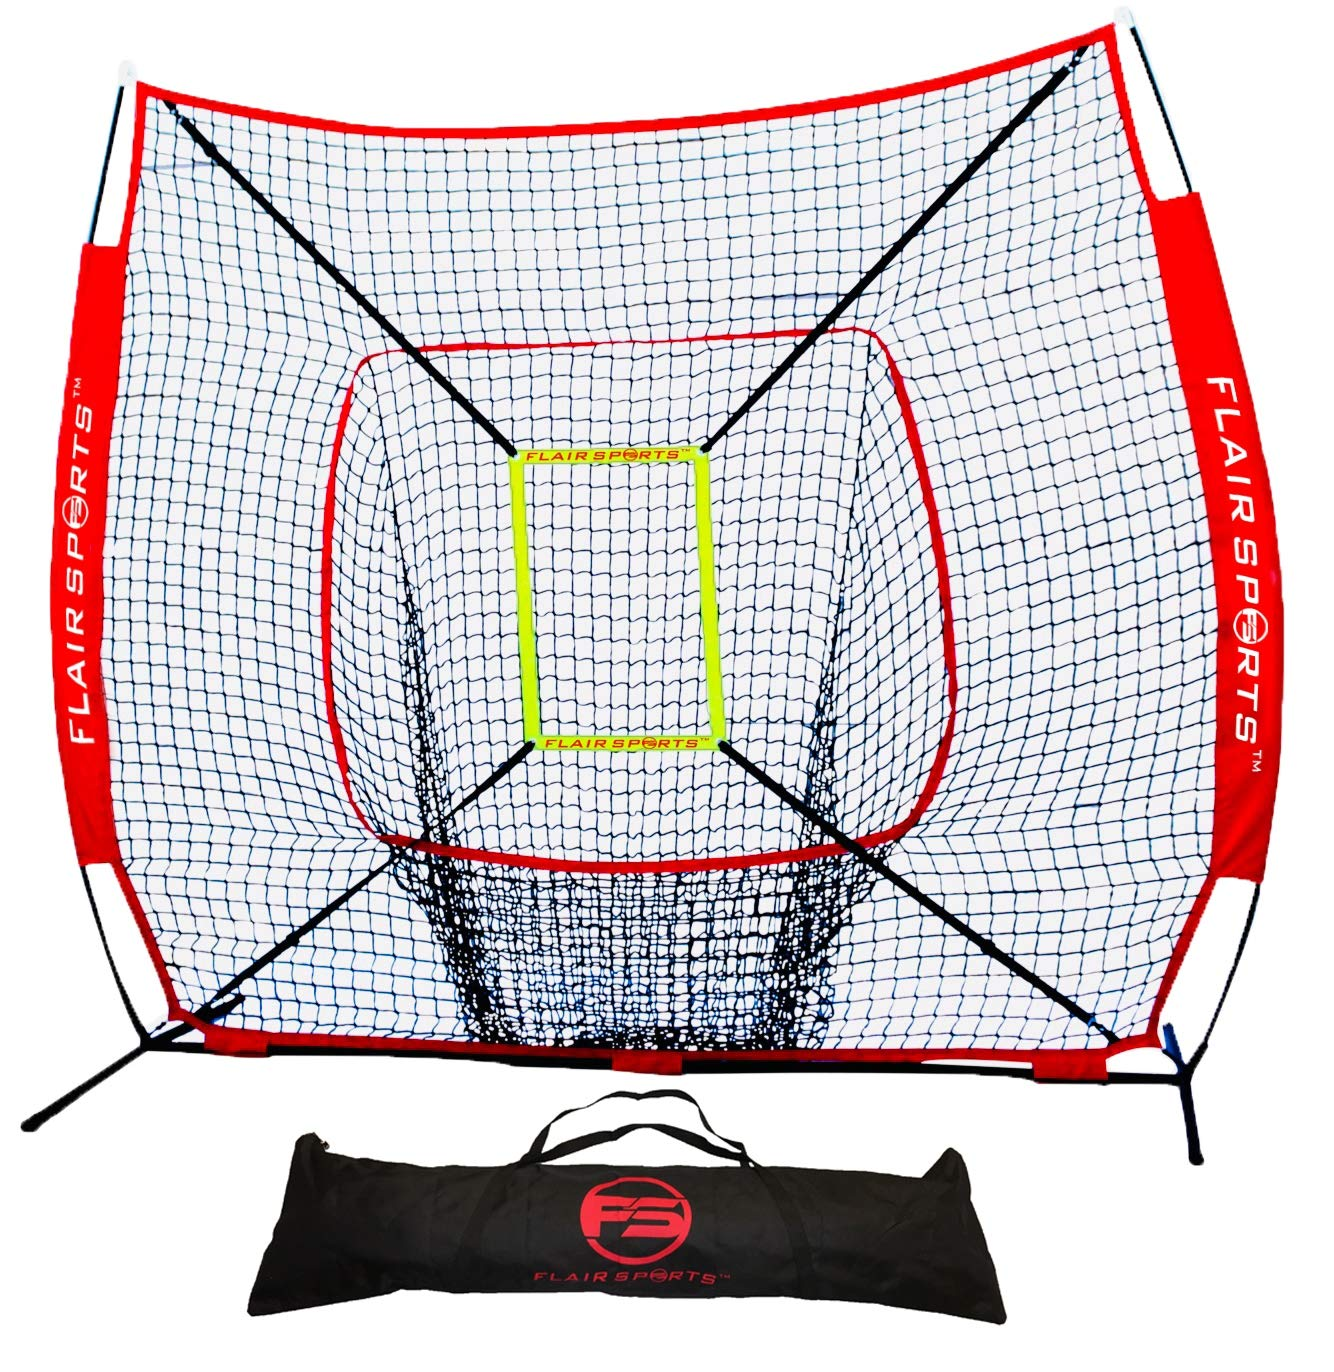 Flair Sports Baseball & Softball Net for Hitting & Pitching | Heavy Duty 7x7 Pro Series | Indoor & Outdoor Training Net | Bow Frame + Bonus Strike Zone Included (Red, Red)